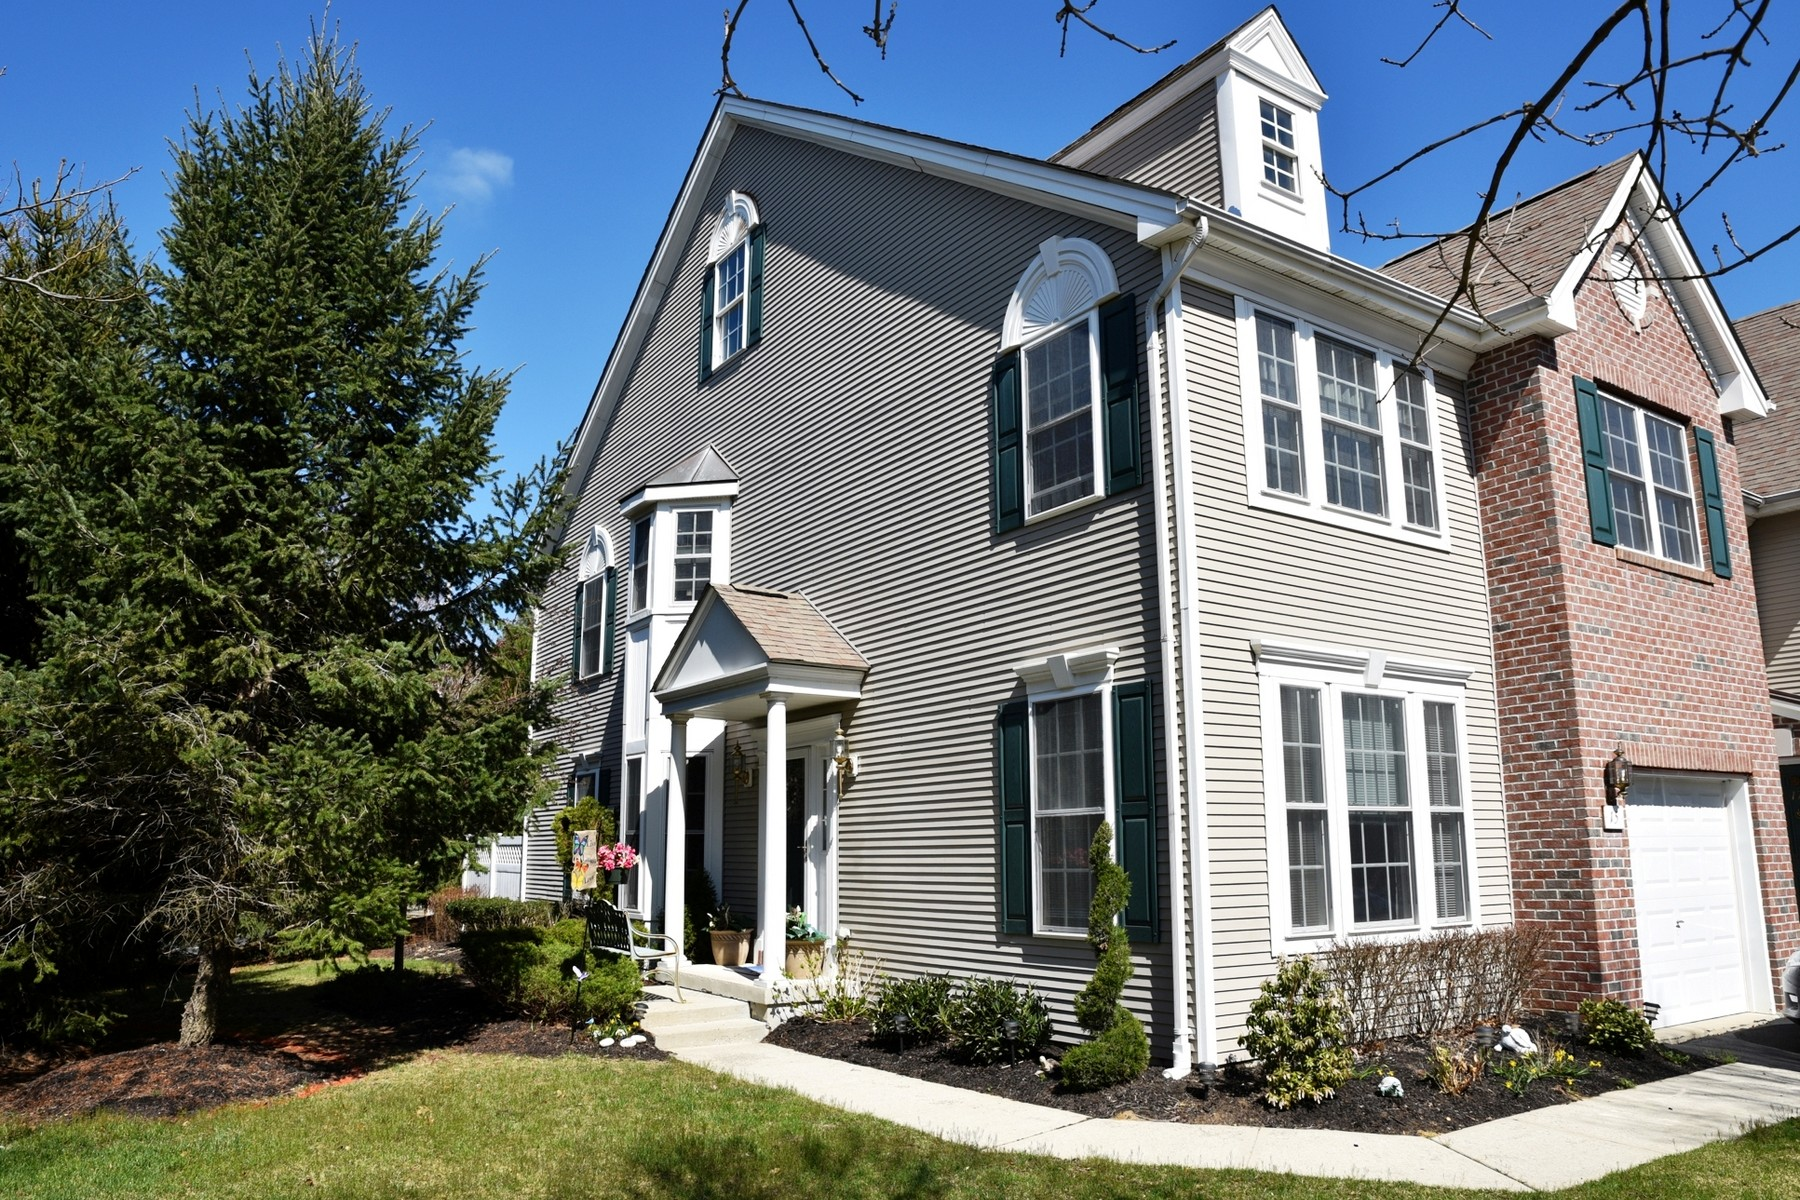 Townhouse for Sale at End Unit Townhouse 15 Ironwood Ct Middletown, New Jersey, 07748 United States